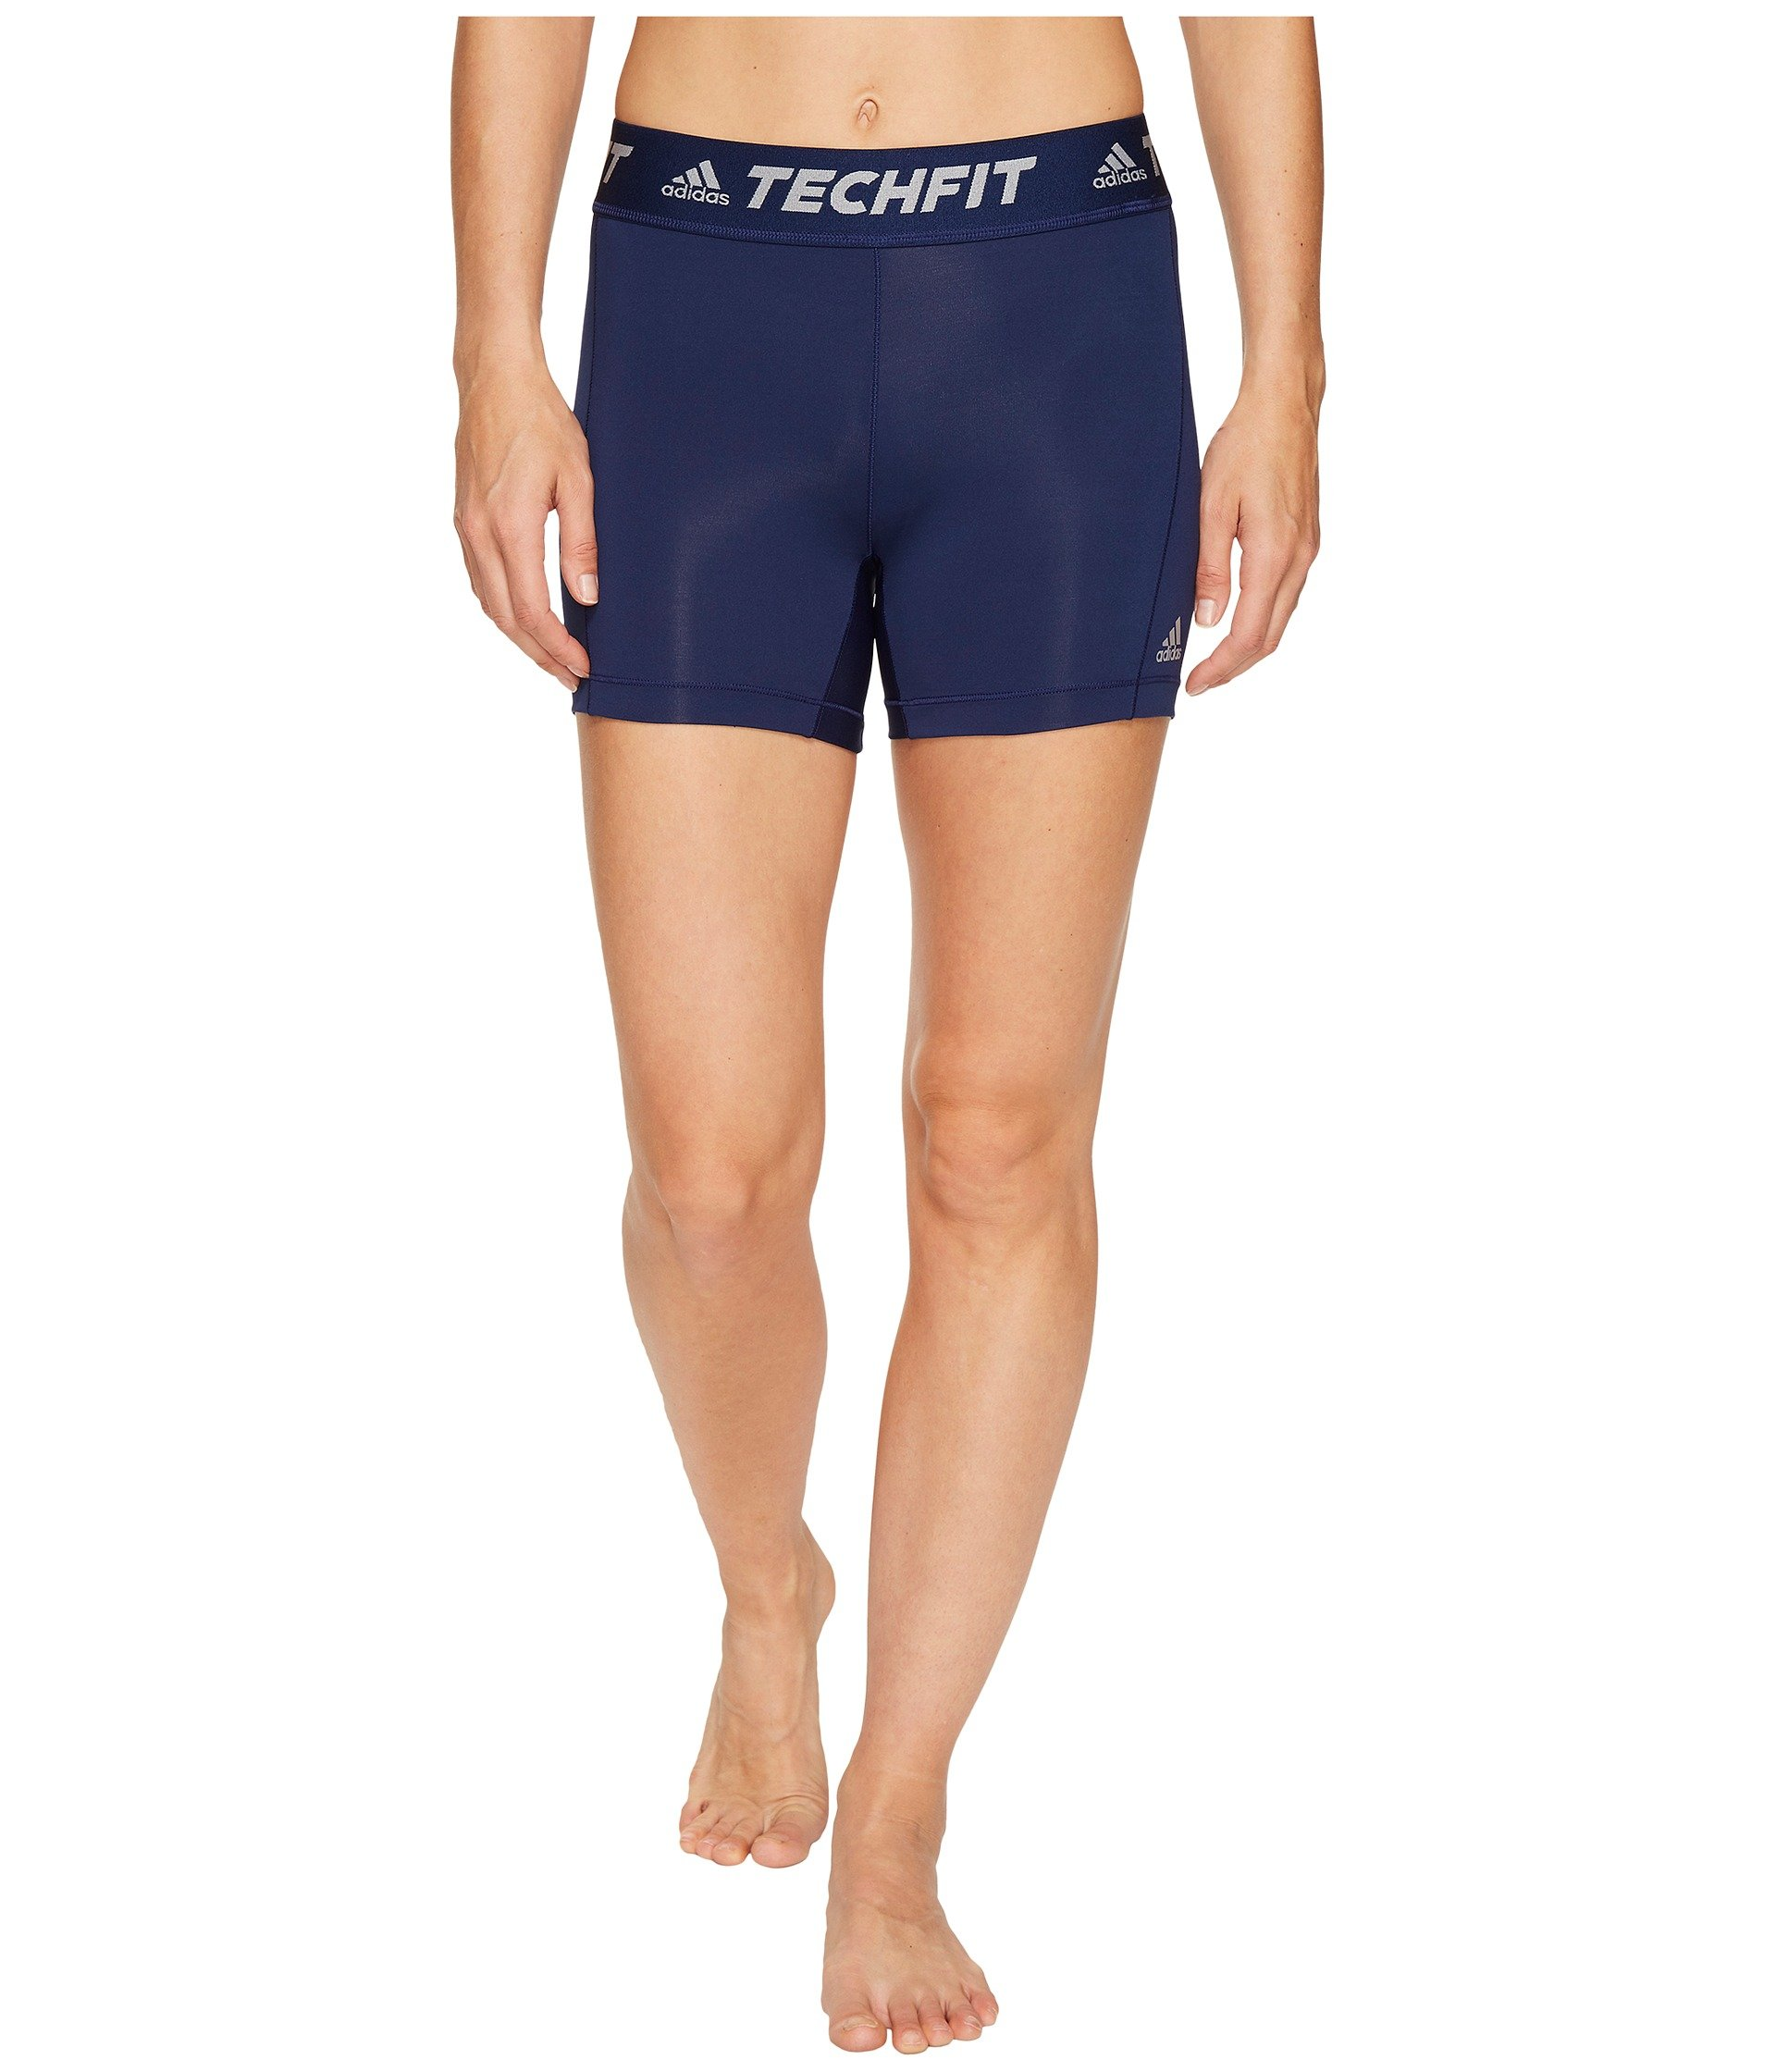 adidas Women's Soccer Techfit Base Short Tights, Dark Blue/White, XX-Small by adidas